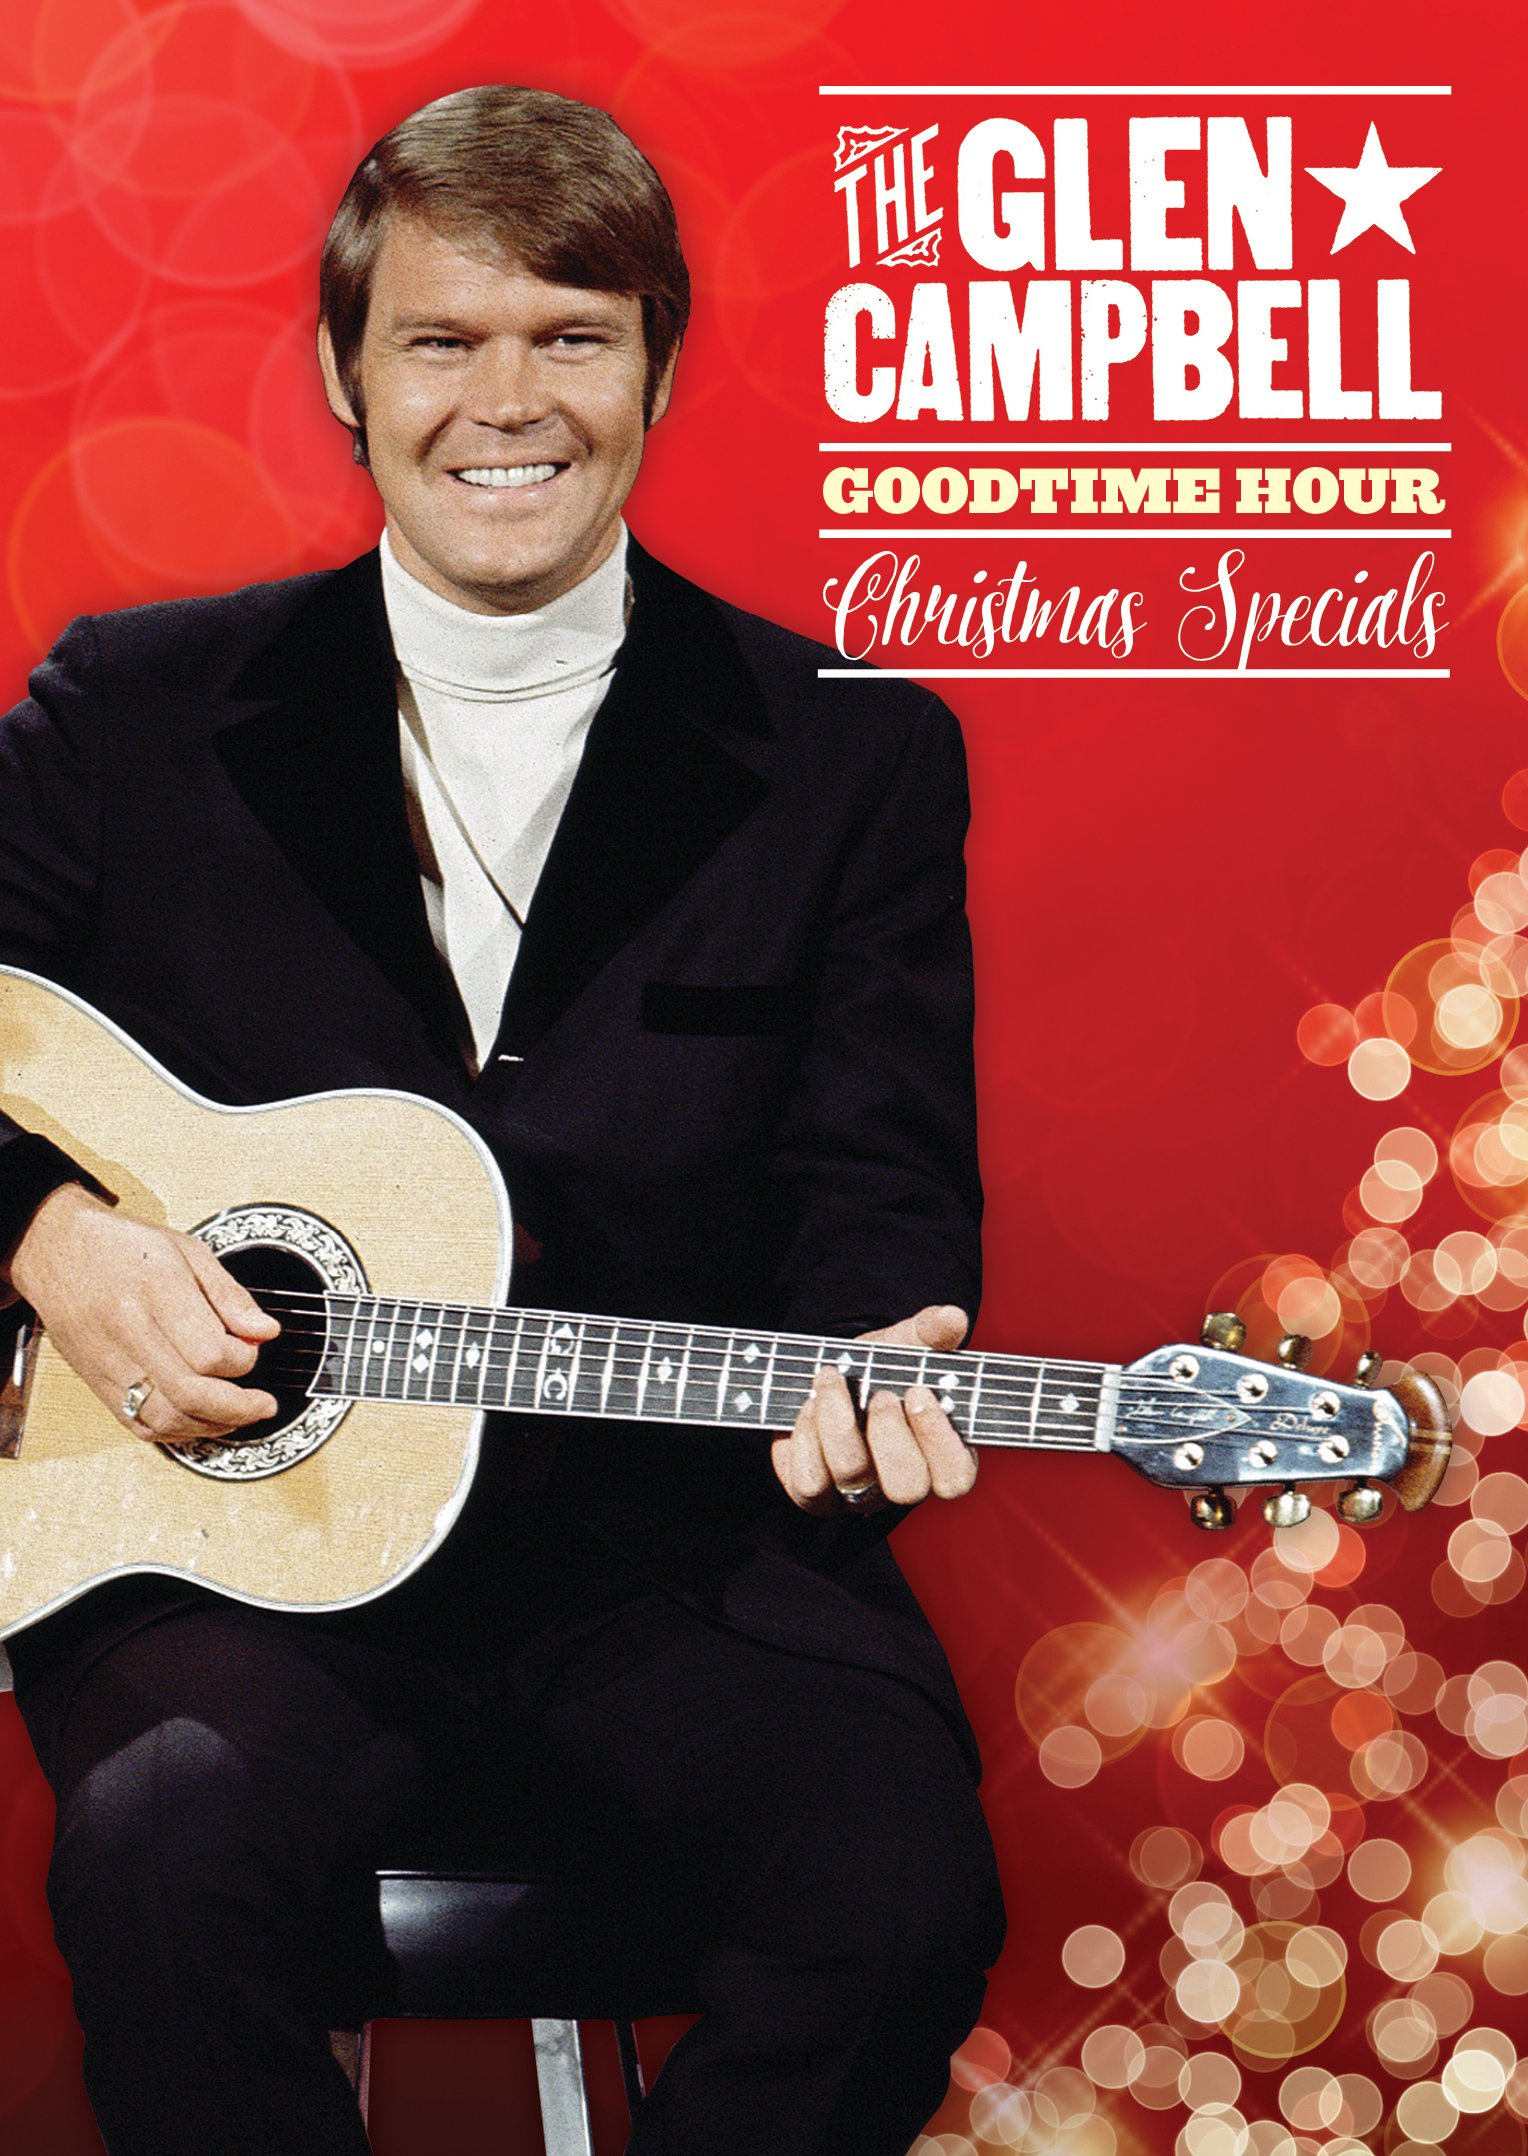 Celebrate the holiday season with country music superstar Glen Campbell and his pals on The Glen Campbell Goodtime Hour Christmas Specials! These specially selected episodes from Glen's classic variety series delivers a stocking full of laughter, music, and holiday cheer for you and your family. Featuring guest appearances from such favorites as George Gobel, Jerry Reed, Anne Murray and Shecky Greene, this is one holiday party that music fans can't afford to miss.